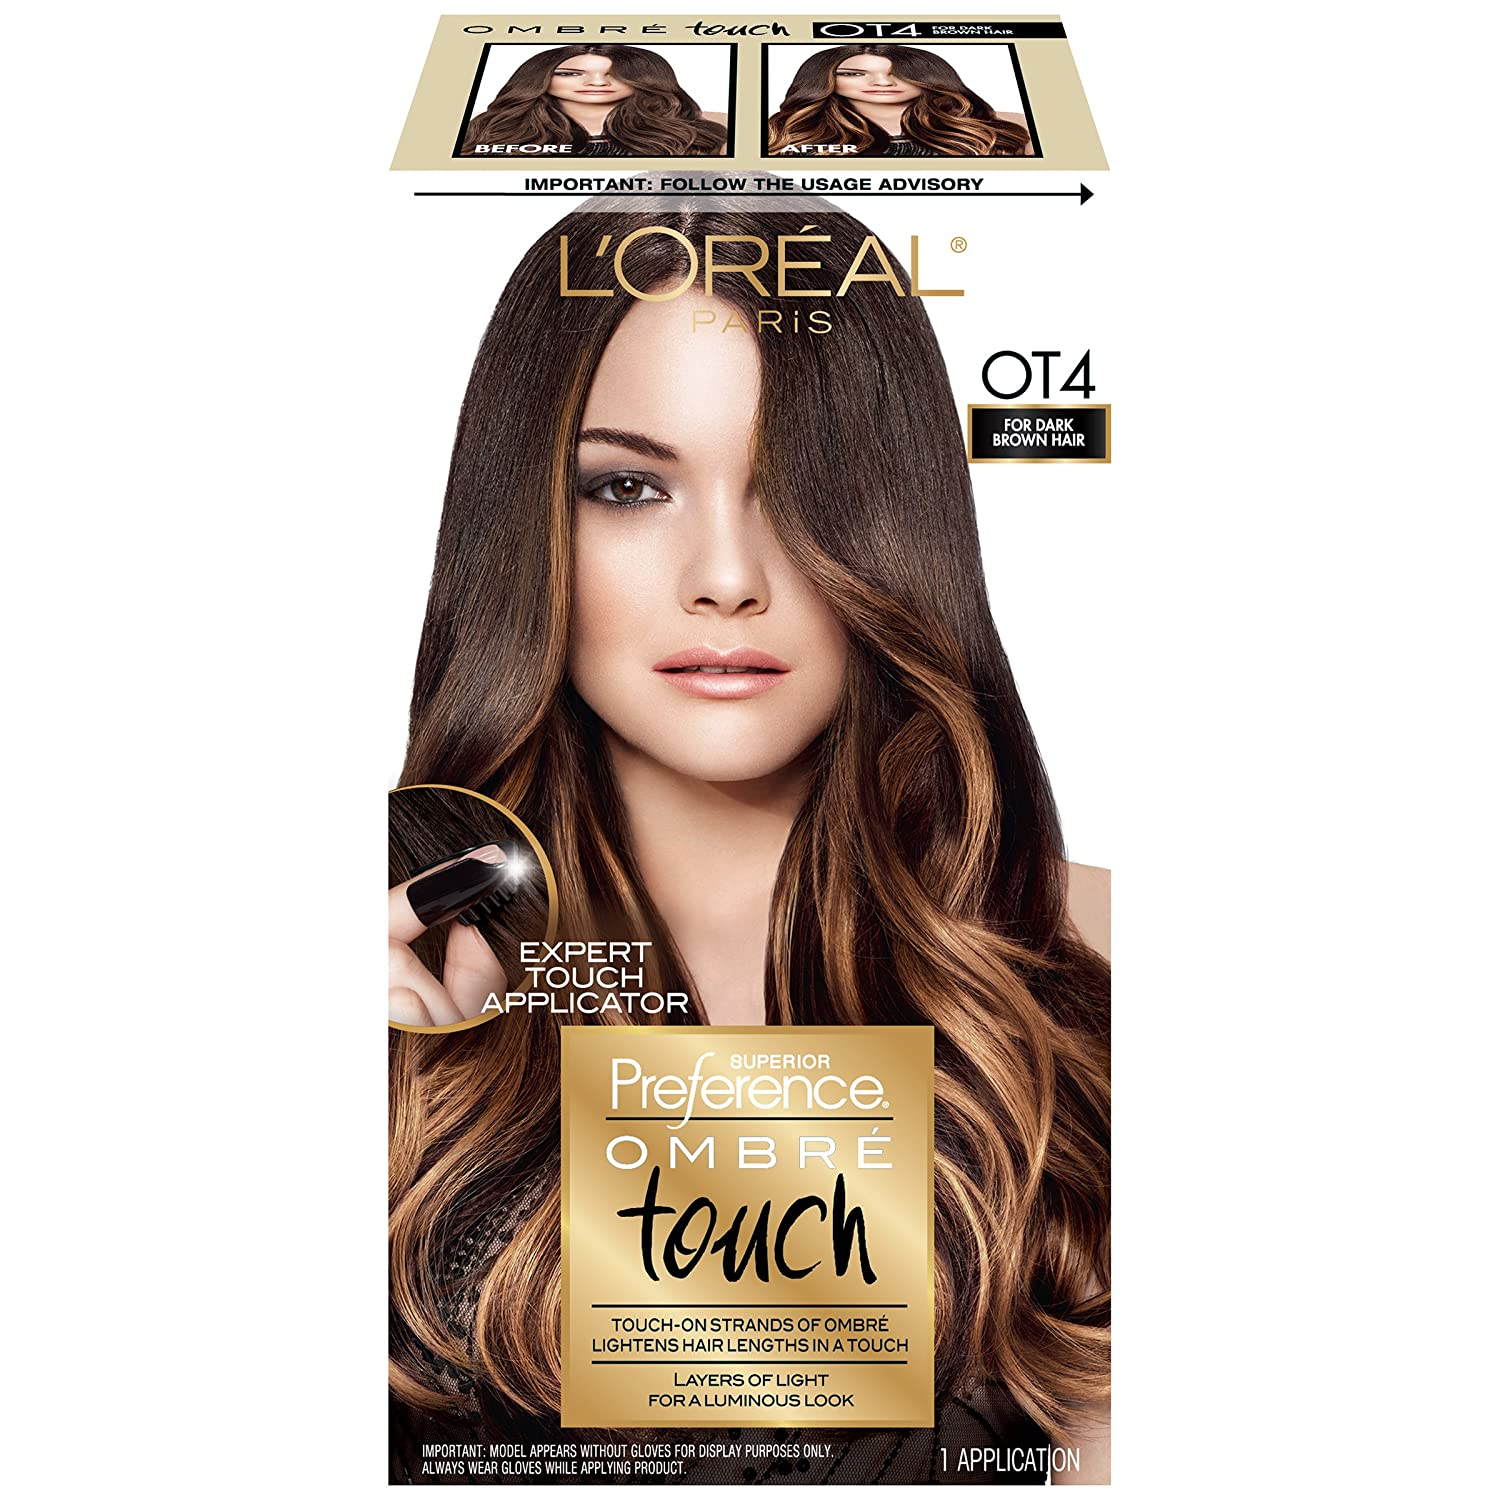 L'Oreal Paris Superior Preference Ombré Touch Haircolour, Ot4 Medium To Dark Brown Ot4 Medium To Dark Brown L' Oreal Paris K1553000